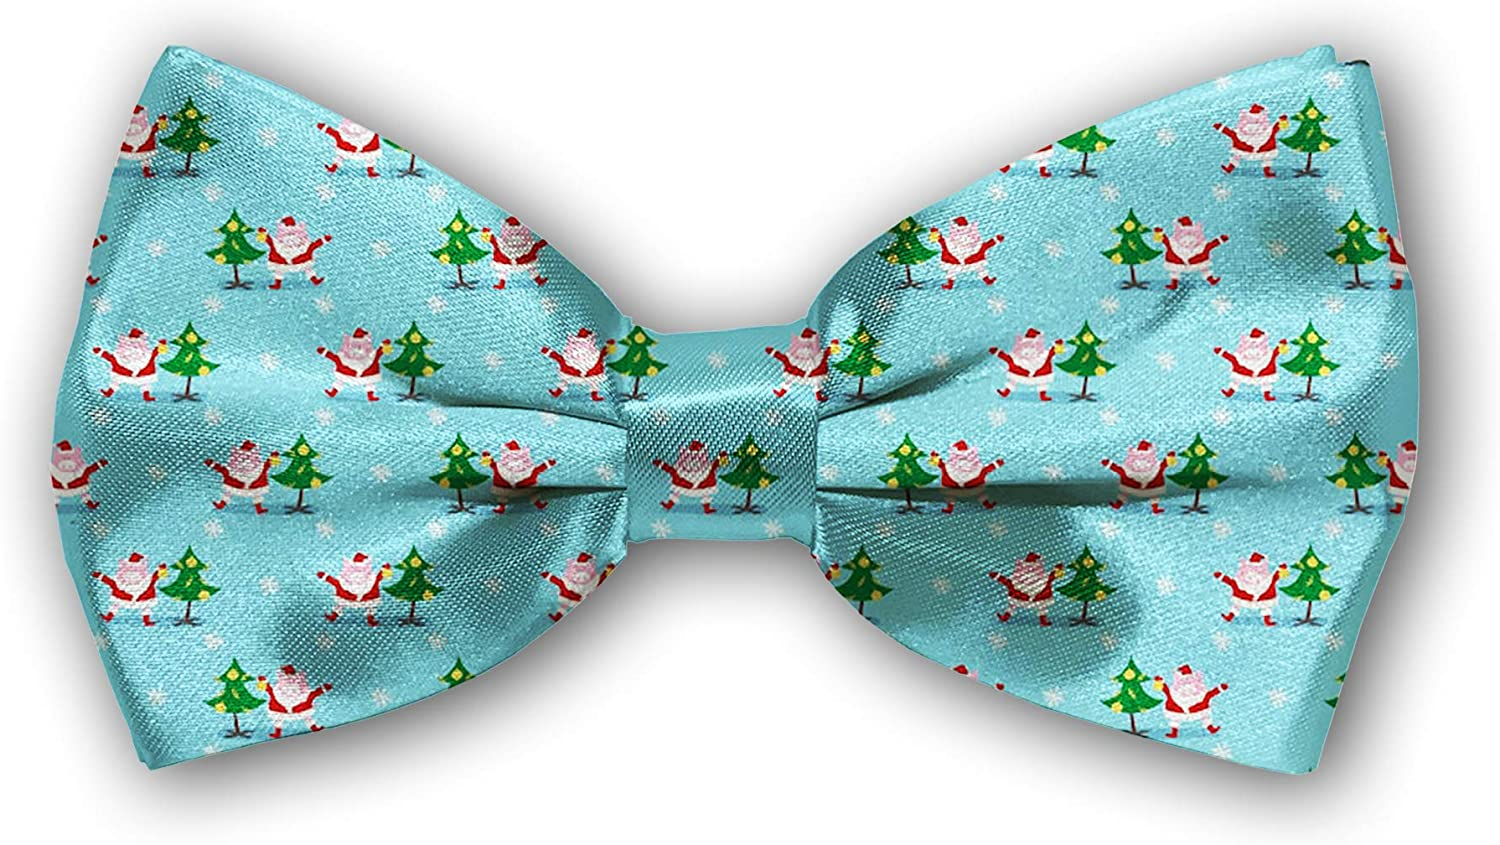 Popular brand in the Bombing free shipping world Bow Tie Tuxedo Butterfly Cotton for Bowtie Adjustable Mens Boys